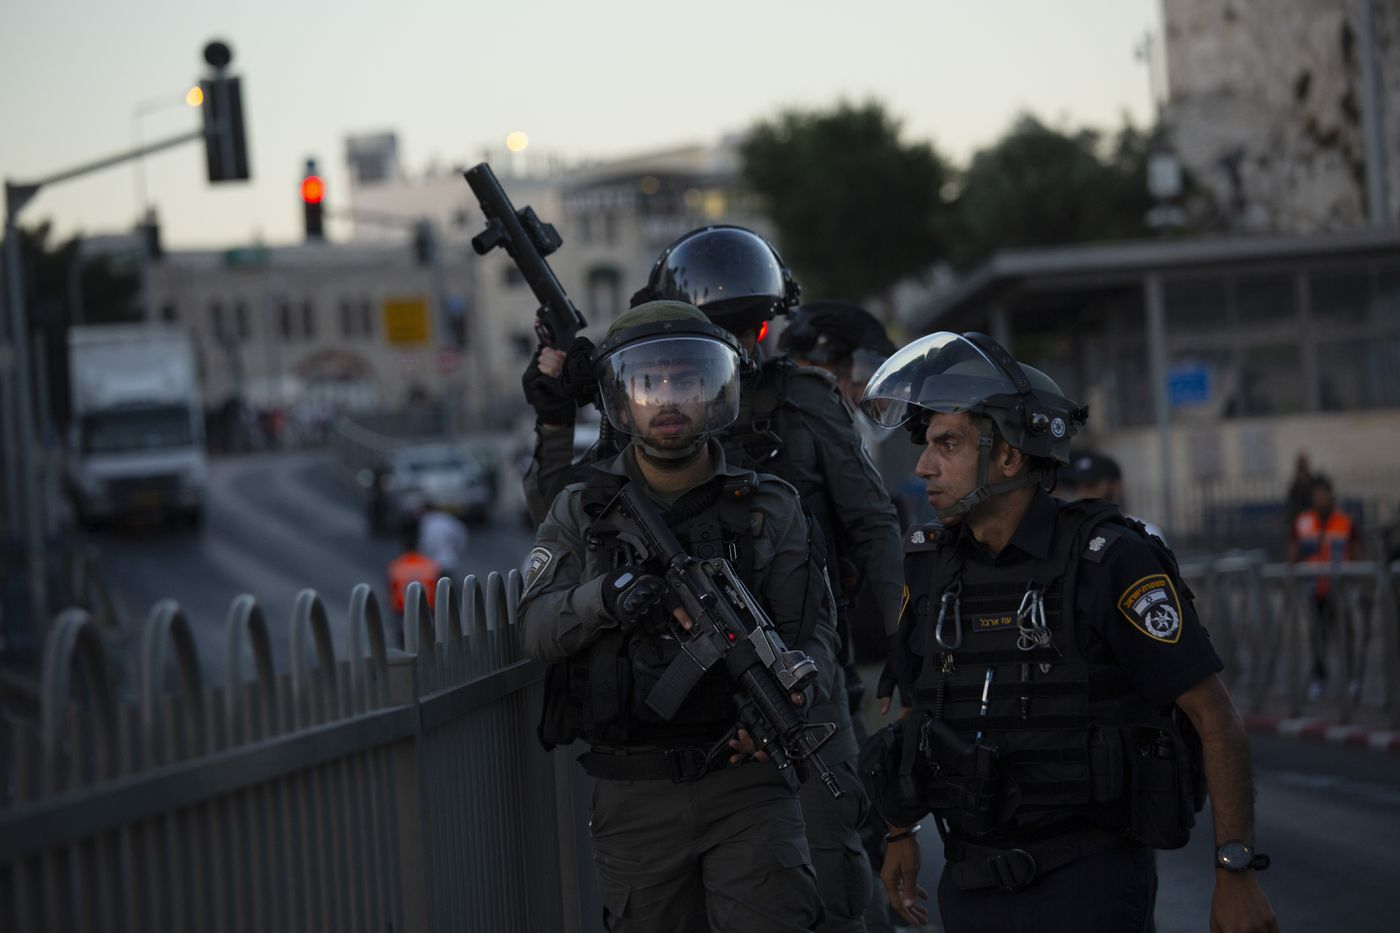 """Israeli police deploy at a Palestinian protest at the Damascus Gate to the Old City of Jerusalem Thursday, June 17, 2021 against incendiary chants used by ultranationalist Israelis at their """"Flags March"""" at the same site on Tuesday."""